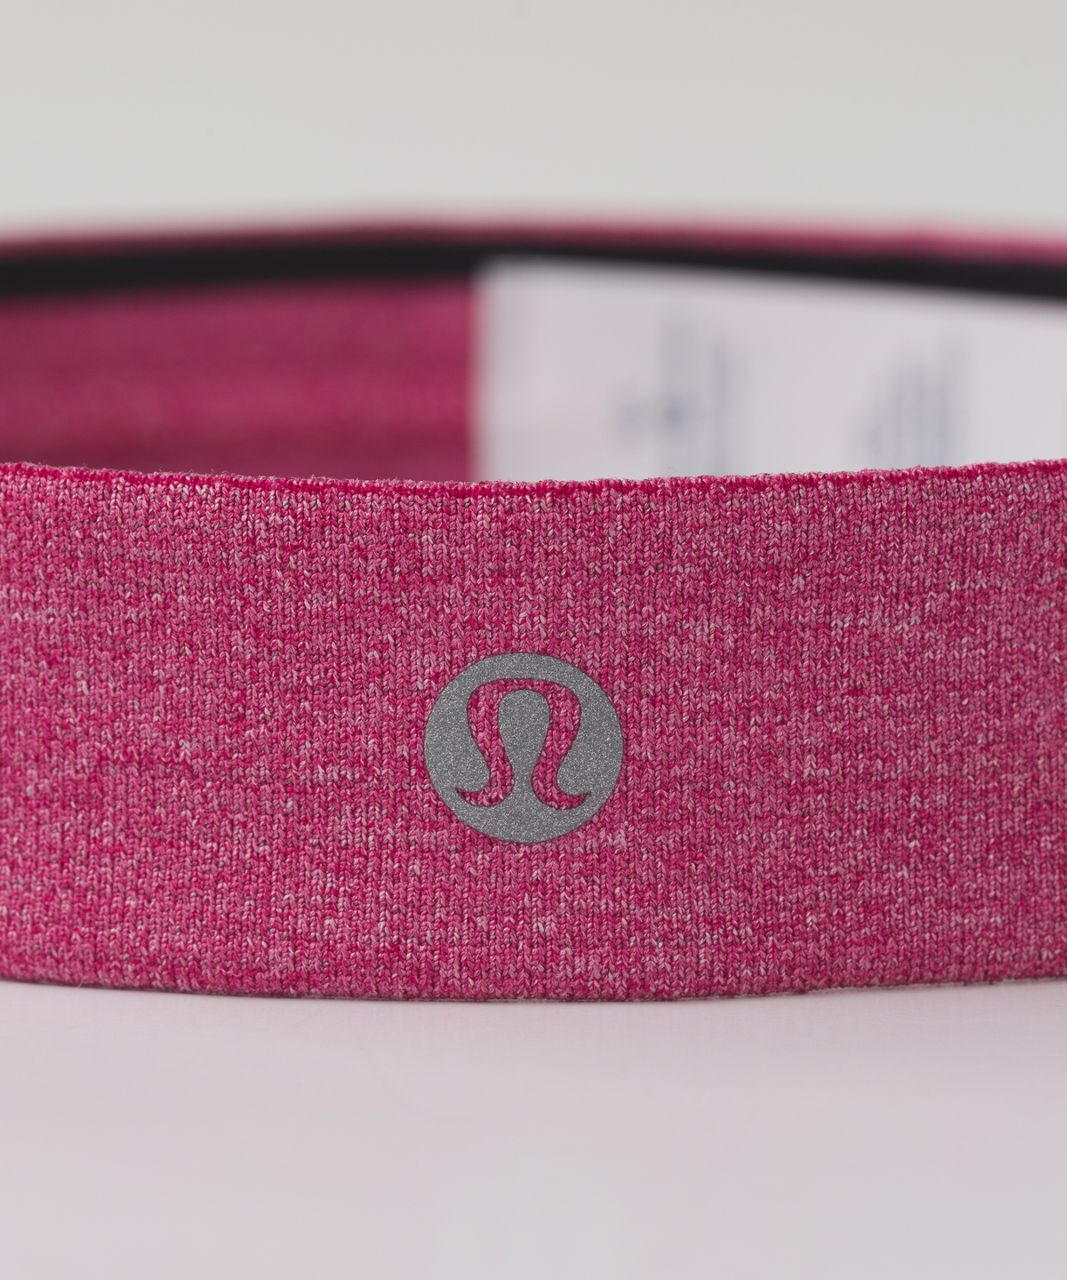 Lululemon Cardio Cross Trainer Headband - Heathered Berry Rumble